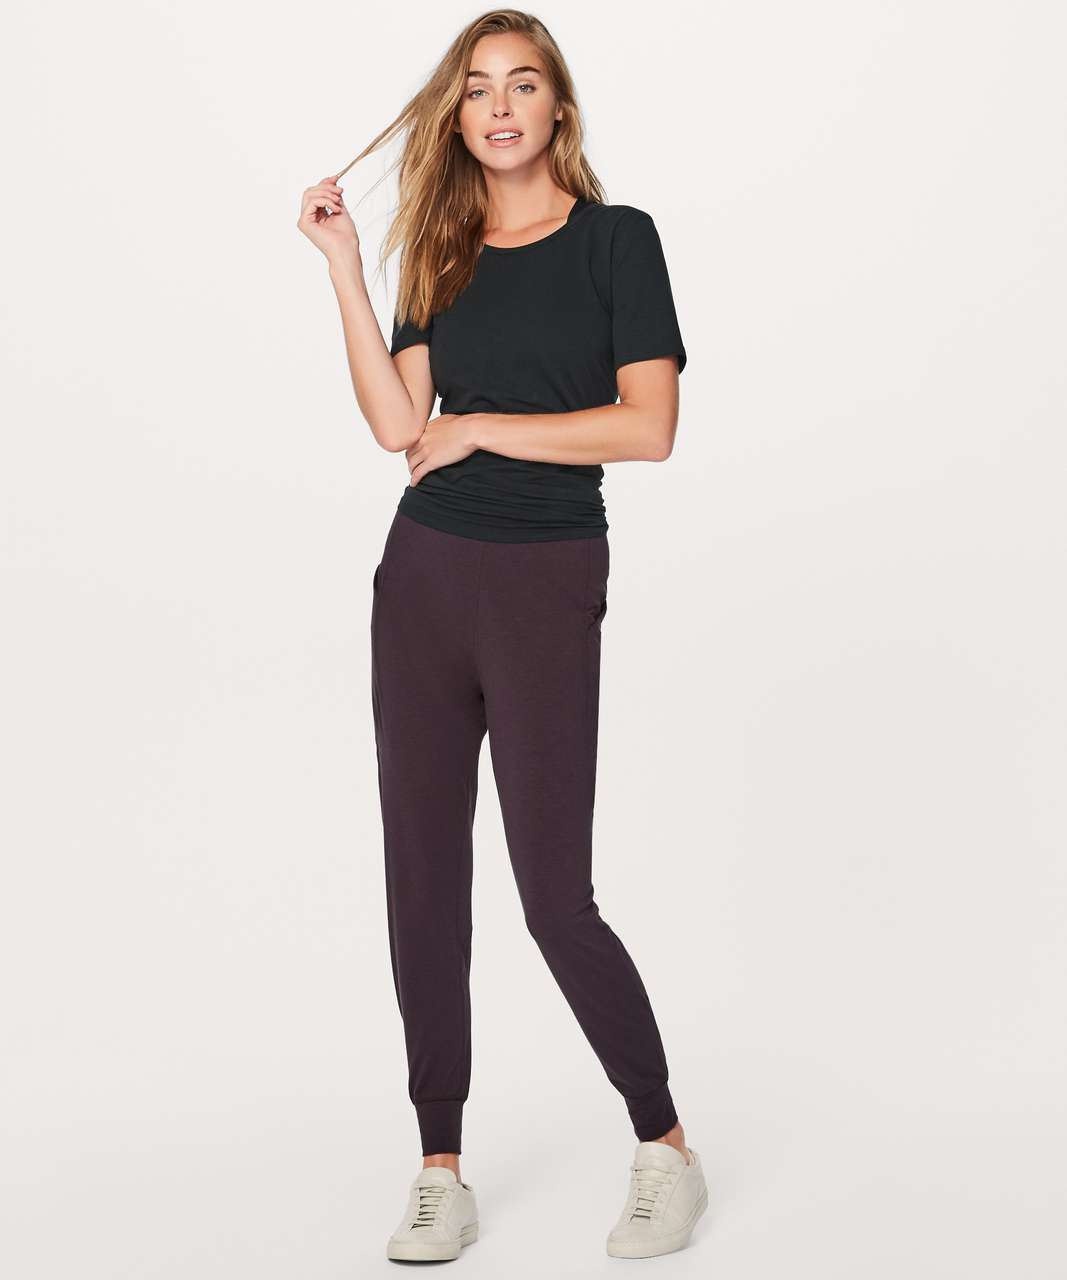 """Lululemon Meant To Move Pant 27"""" - Black Cherry"""